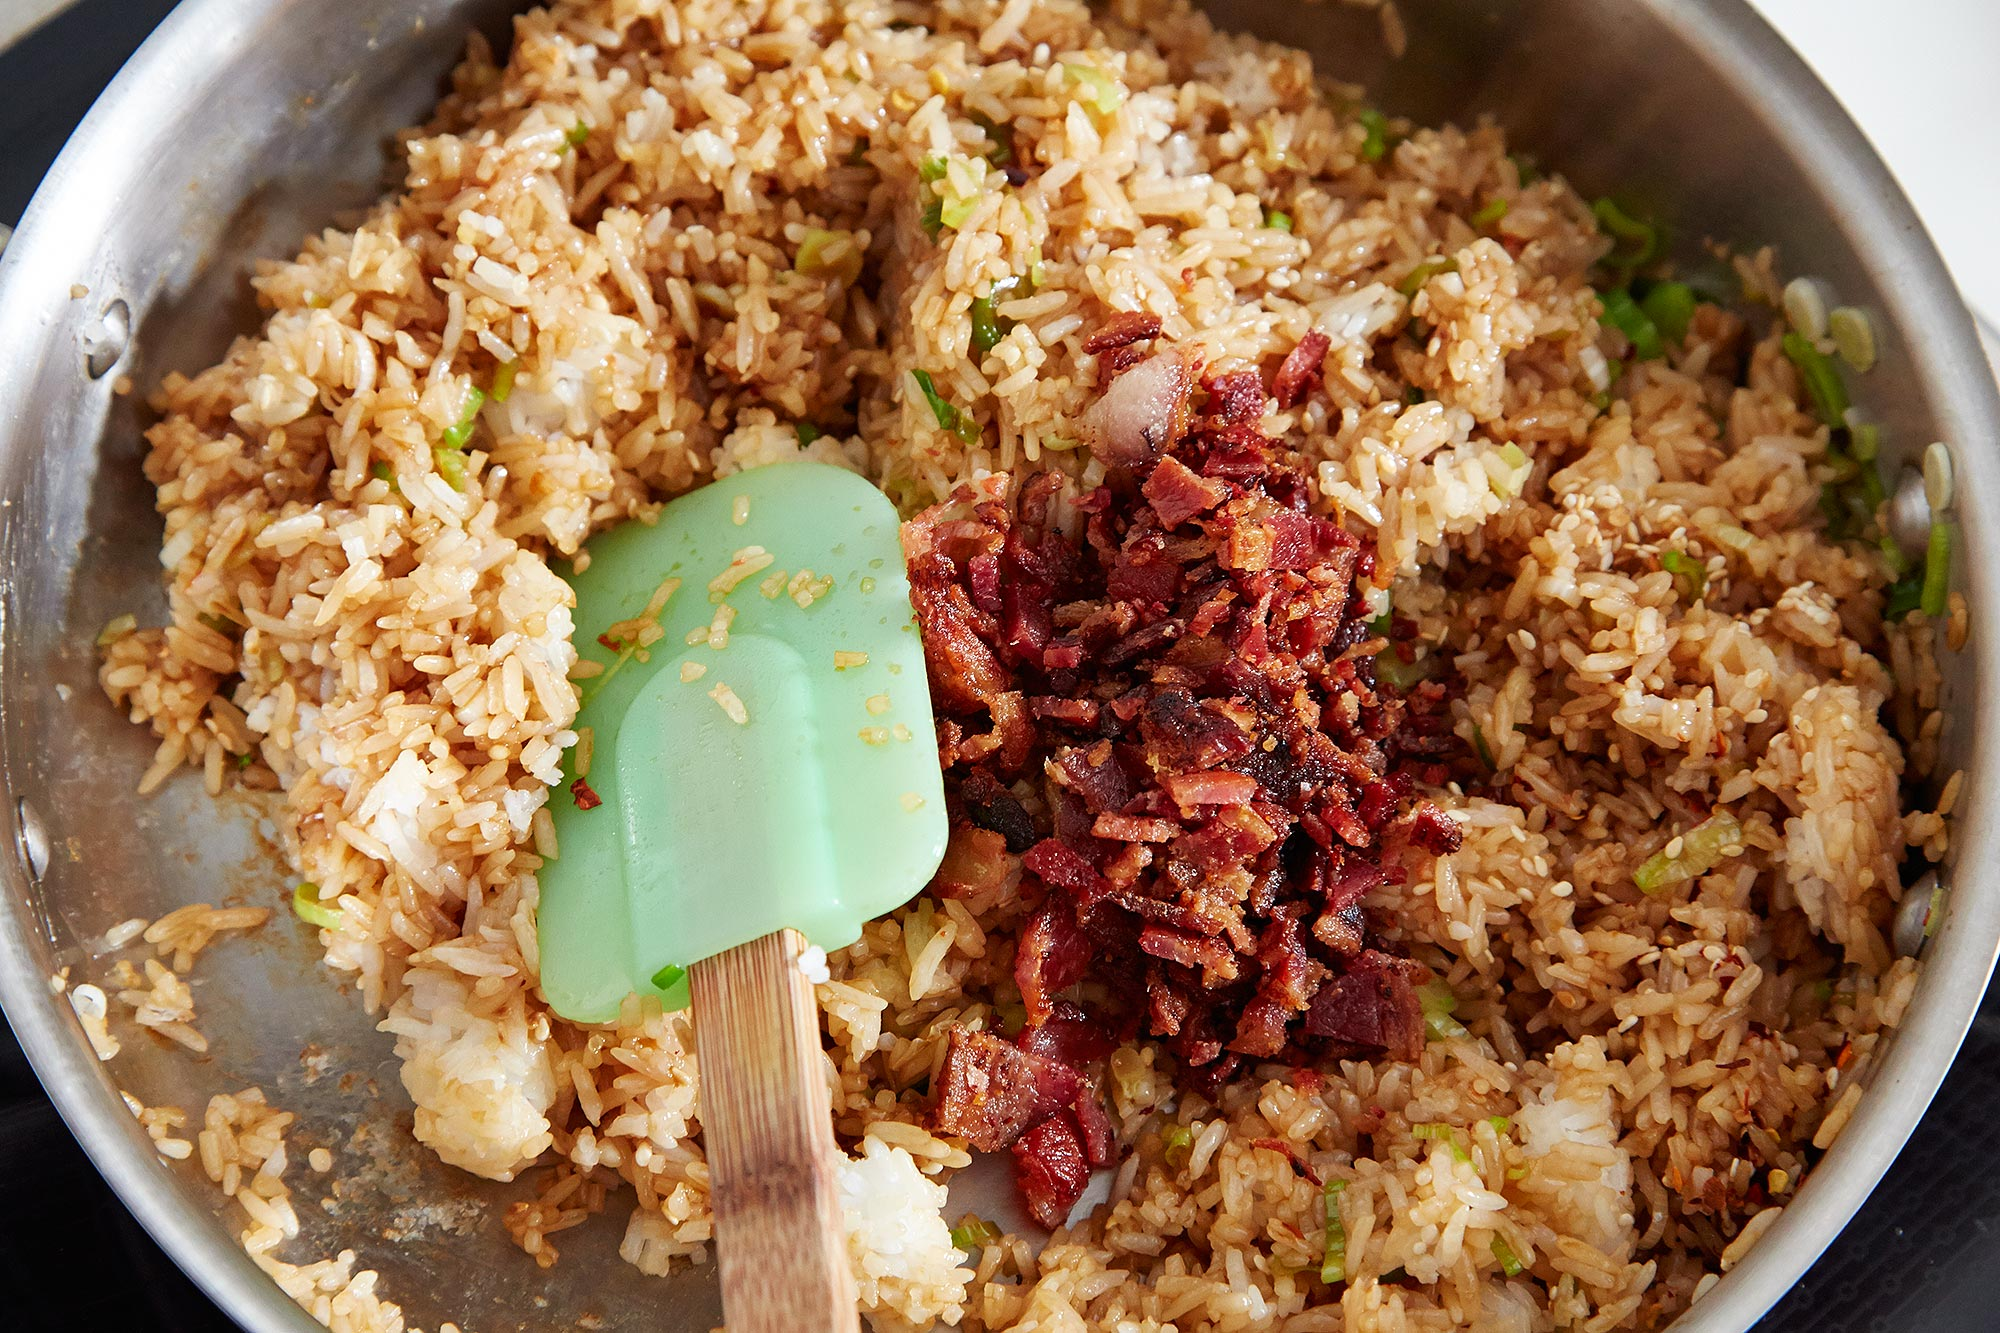 2014-0408_finalist_breakfast-fried-rice-025-141